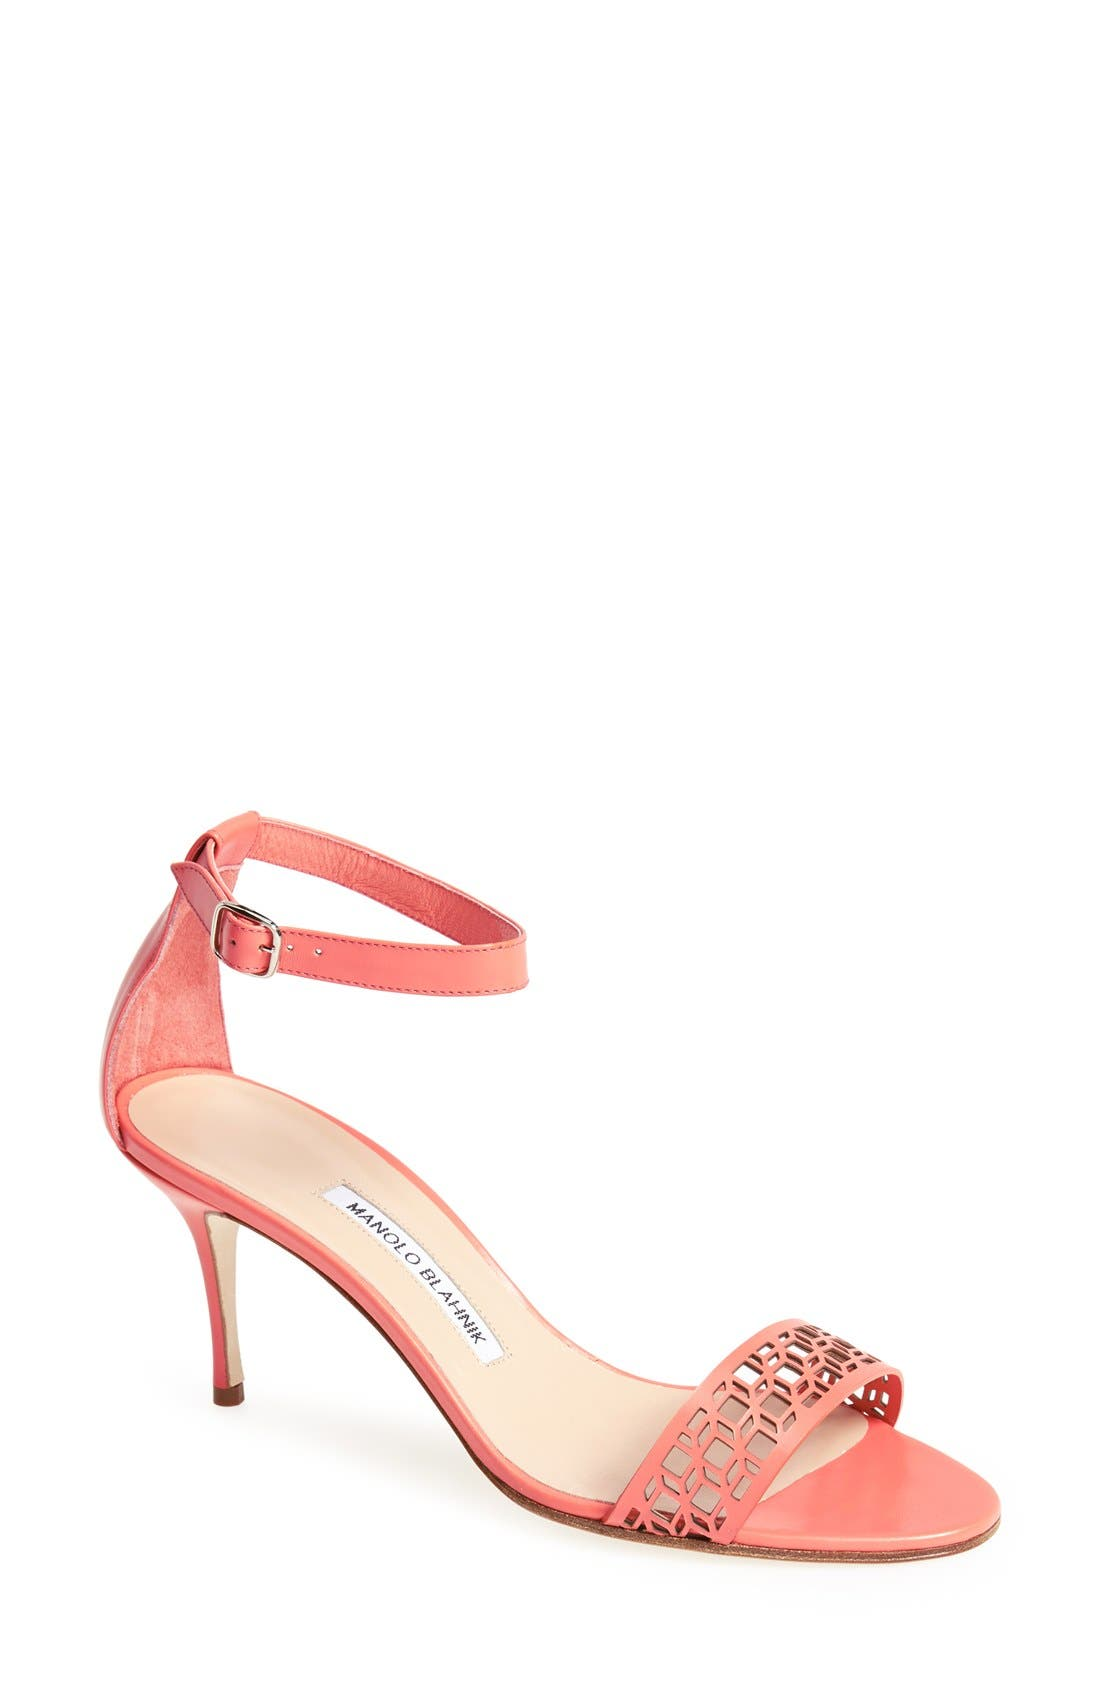 Alternate Image 1 Selected - Manolo Blahnik 'Maurila' Leather Ankle Strap Sandal (Women)